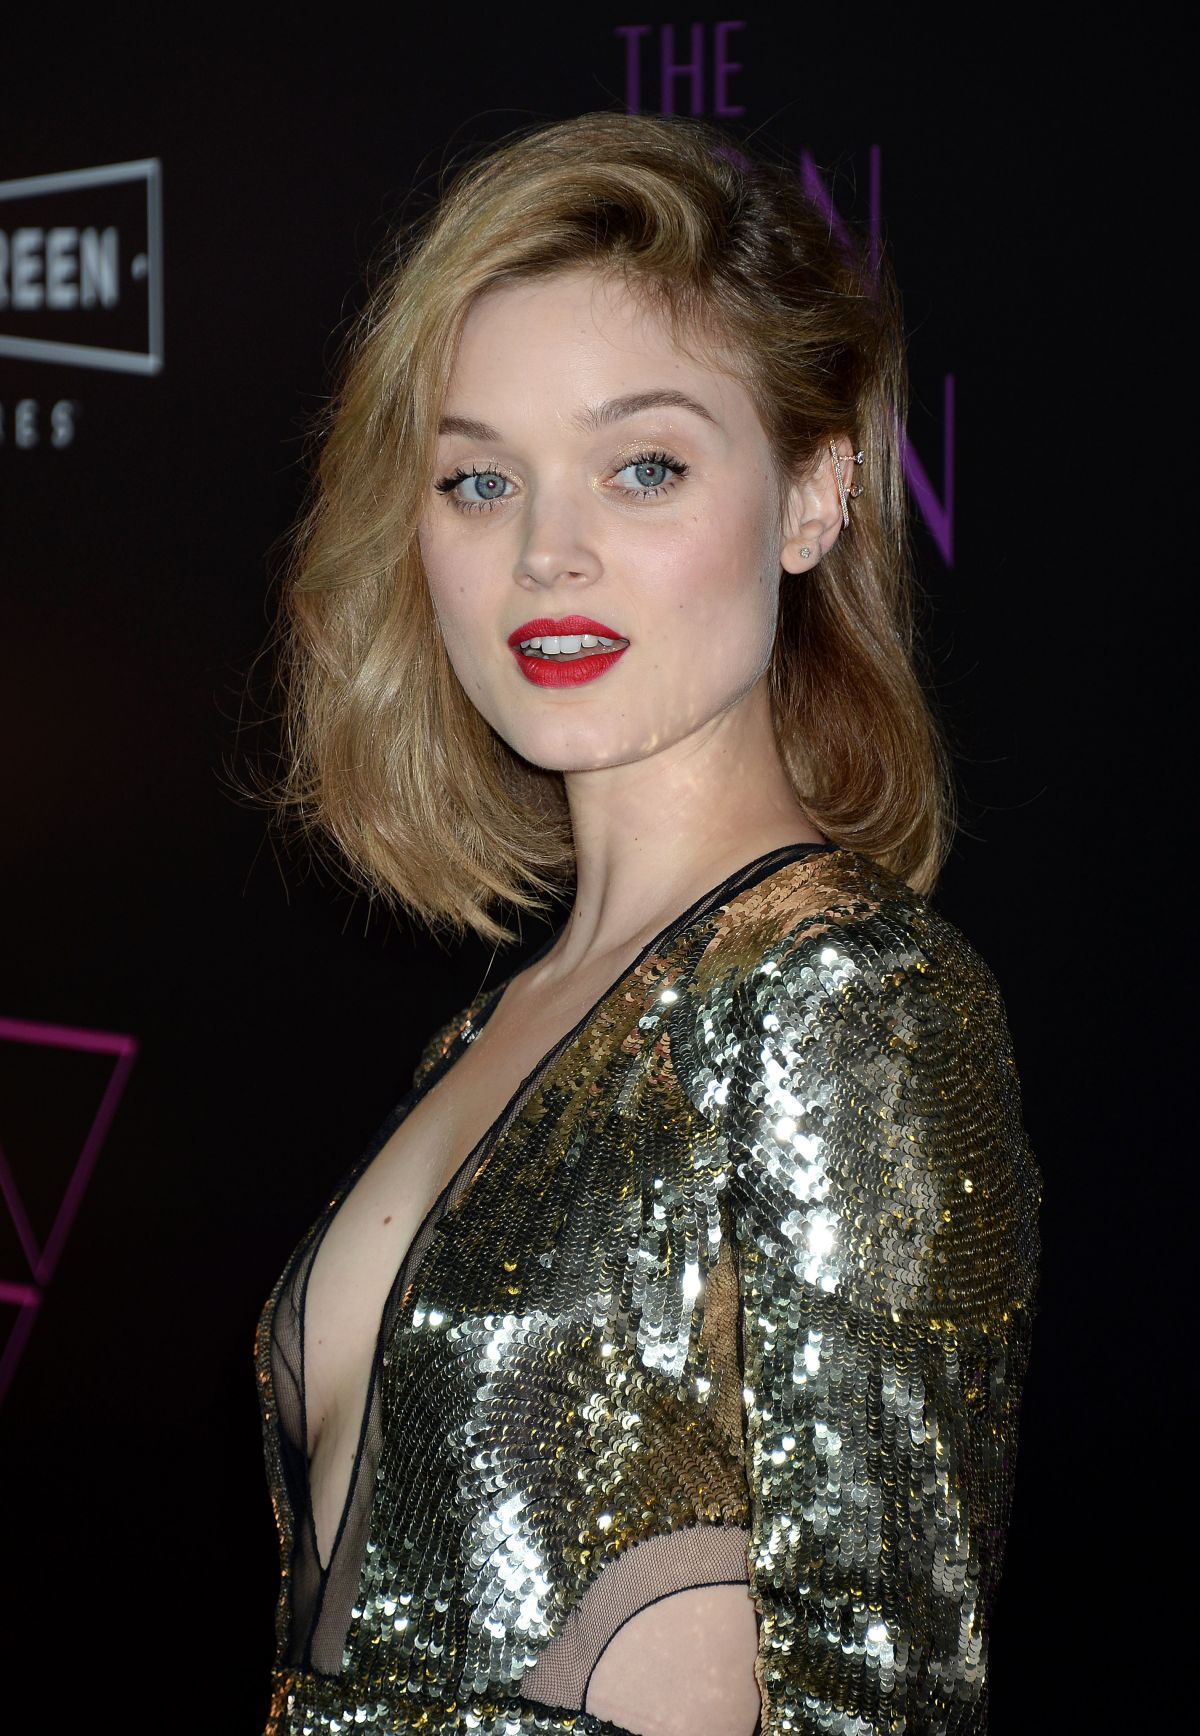 Pussy The Fapppening Bella Heathcote  naked (95 fotos), 2019, panties